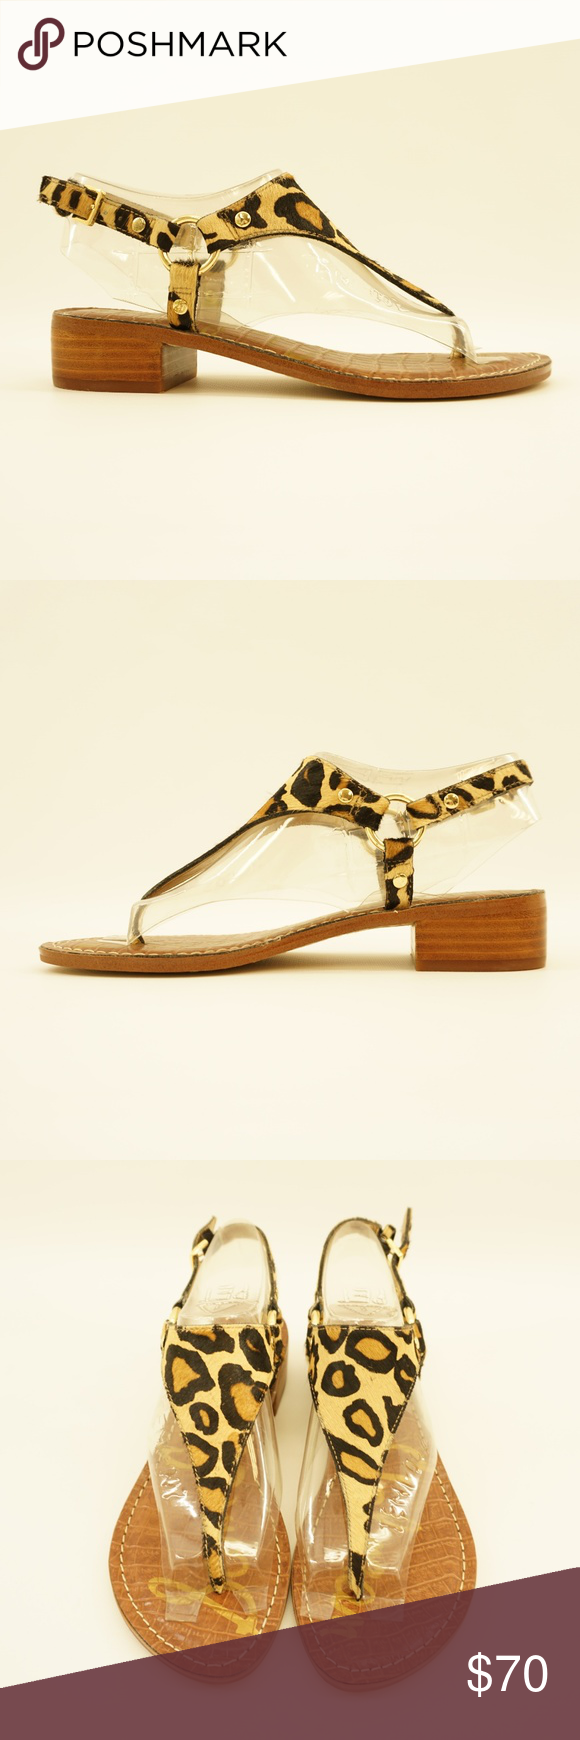 6913941177d5 Sam Edelman Leopard Ankle Strap Thong Heel Sandal Off the rack - displayed  in a department